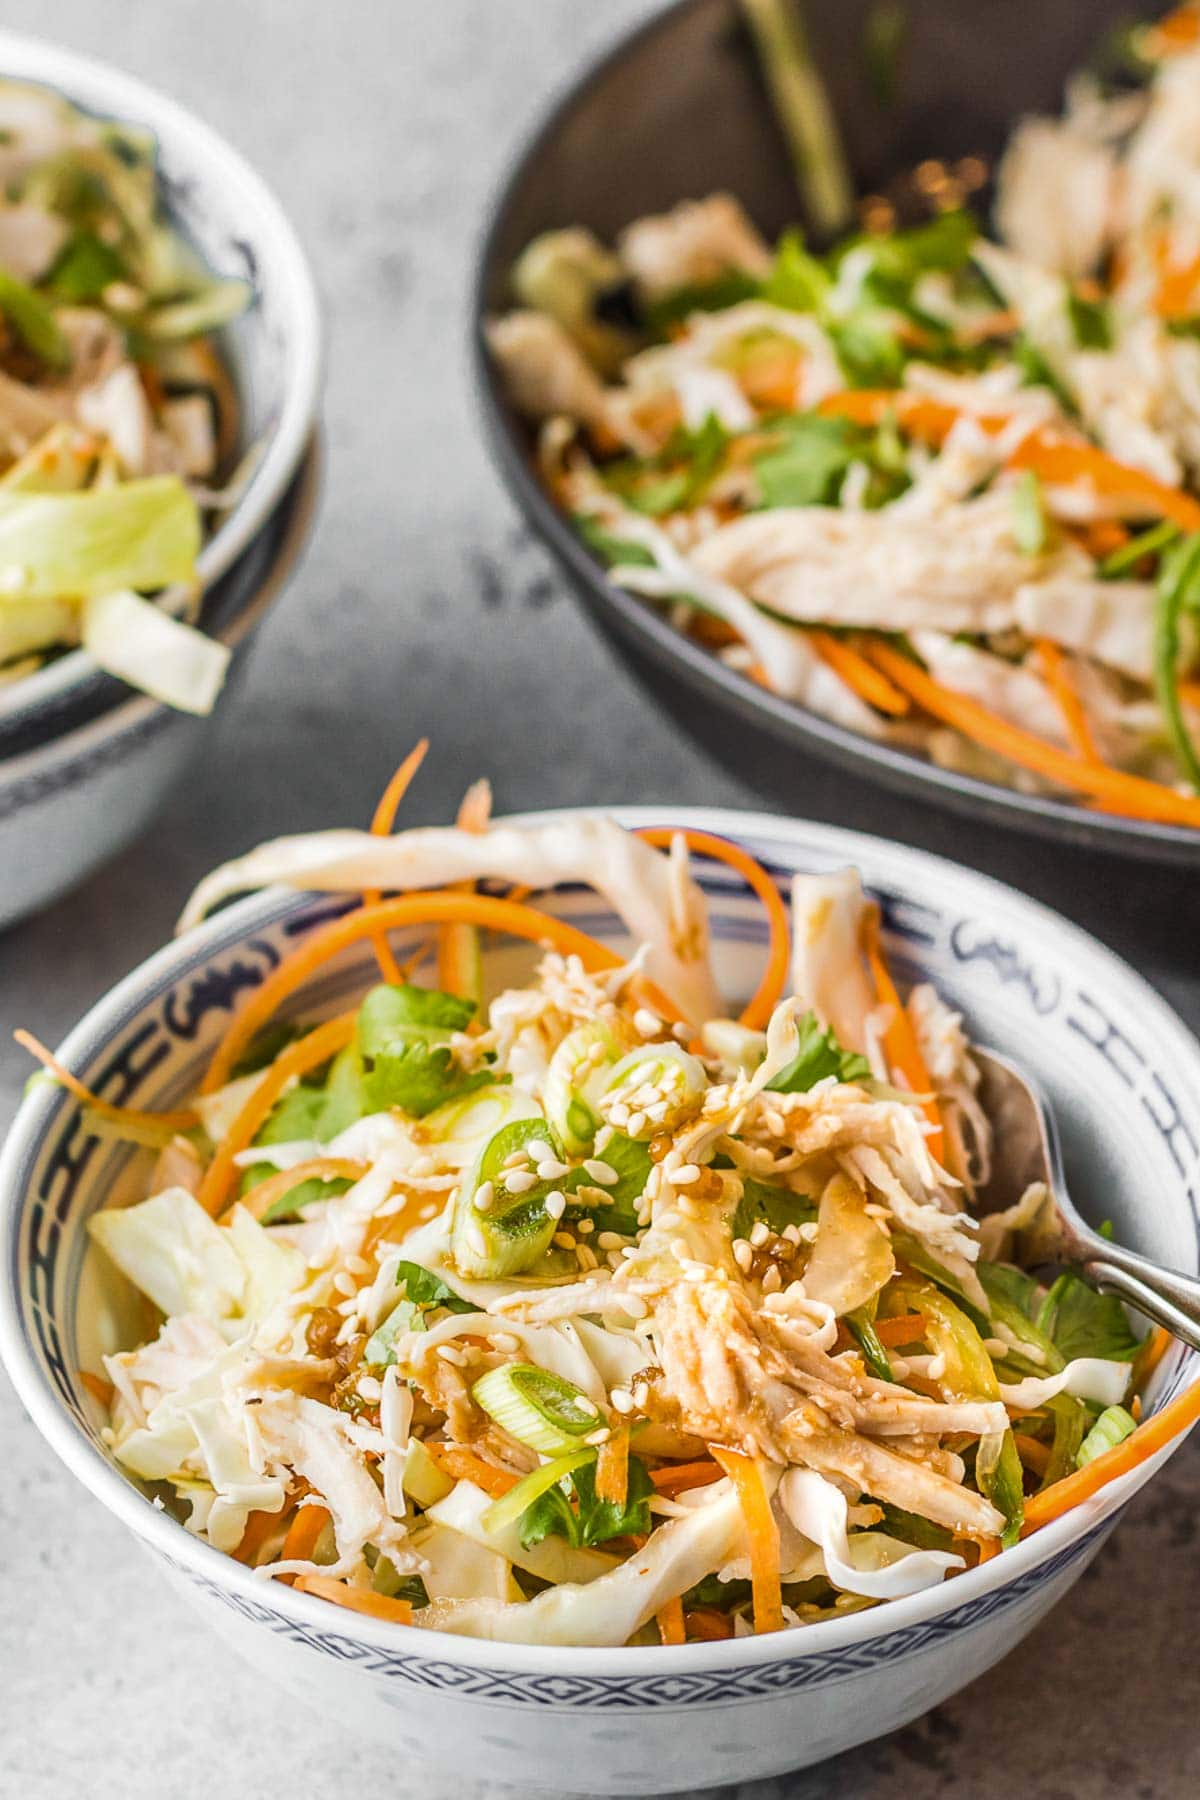 Asian salad in a bowl close up